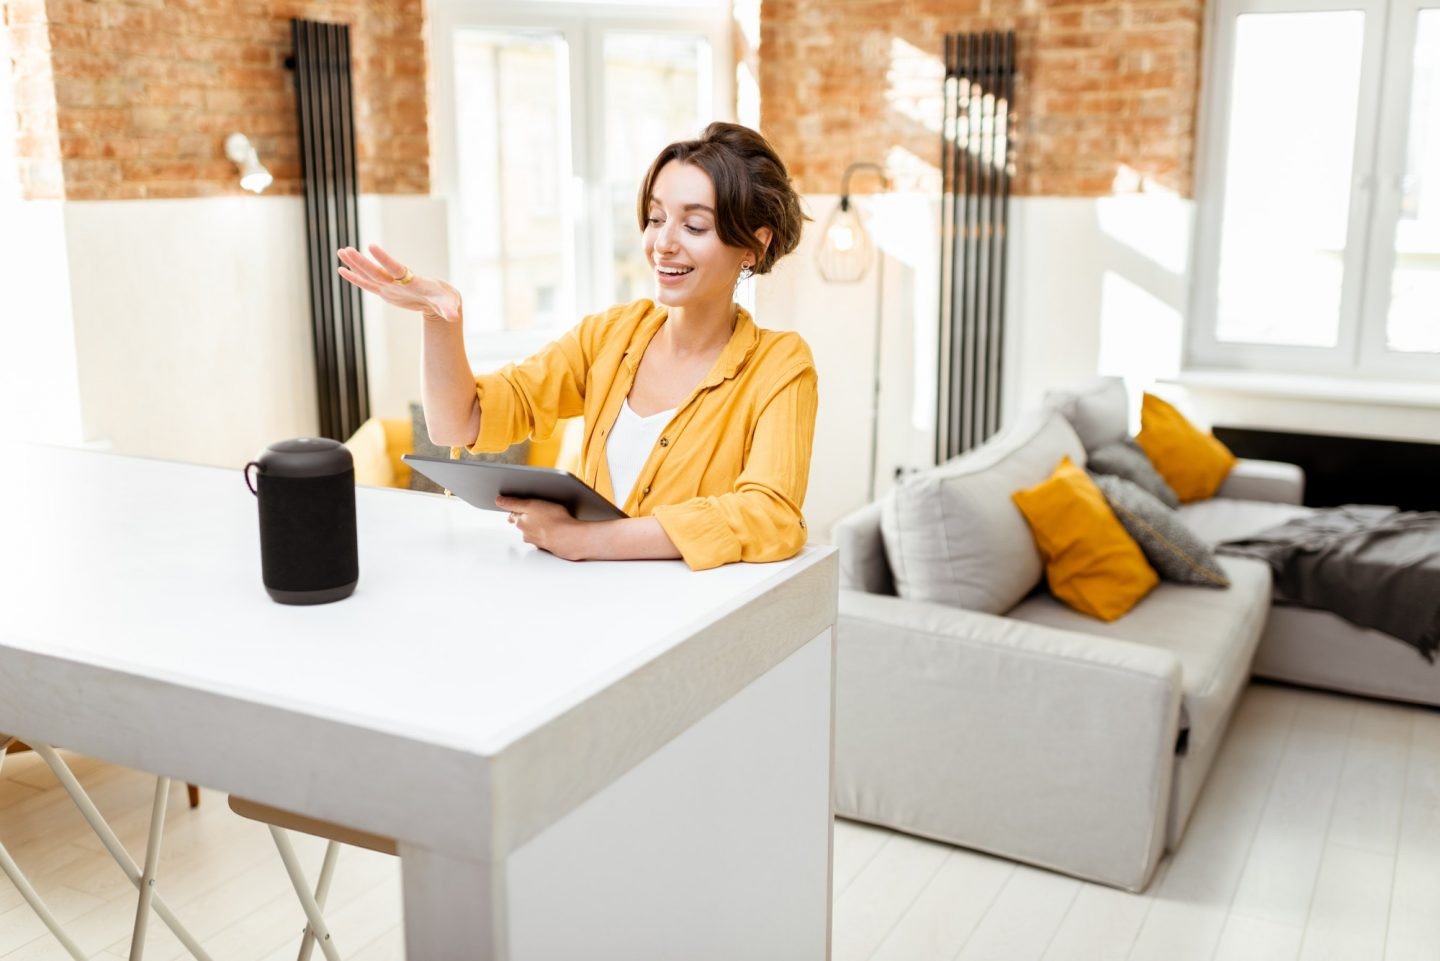 woman-controlling-smart-home-devices-with-a-voice-commands.jpg